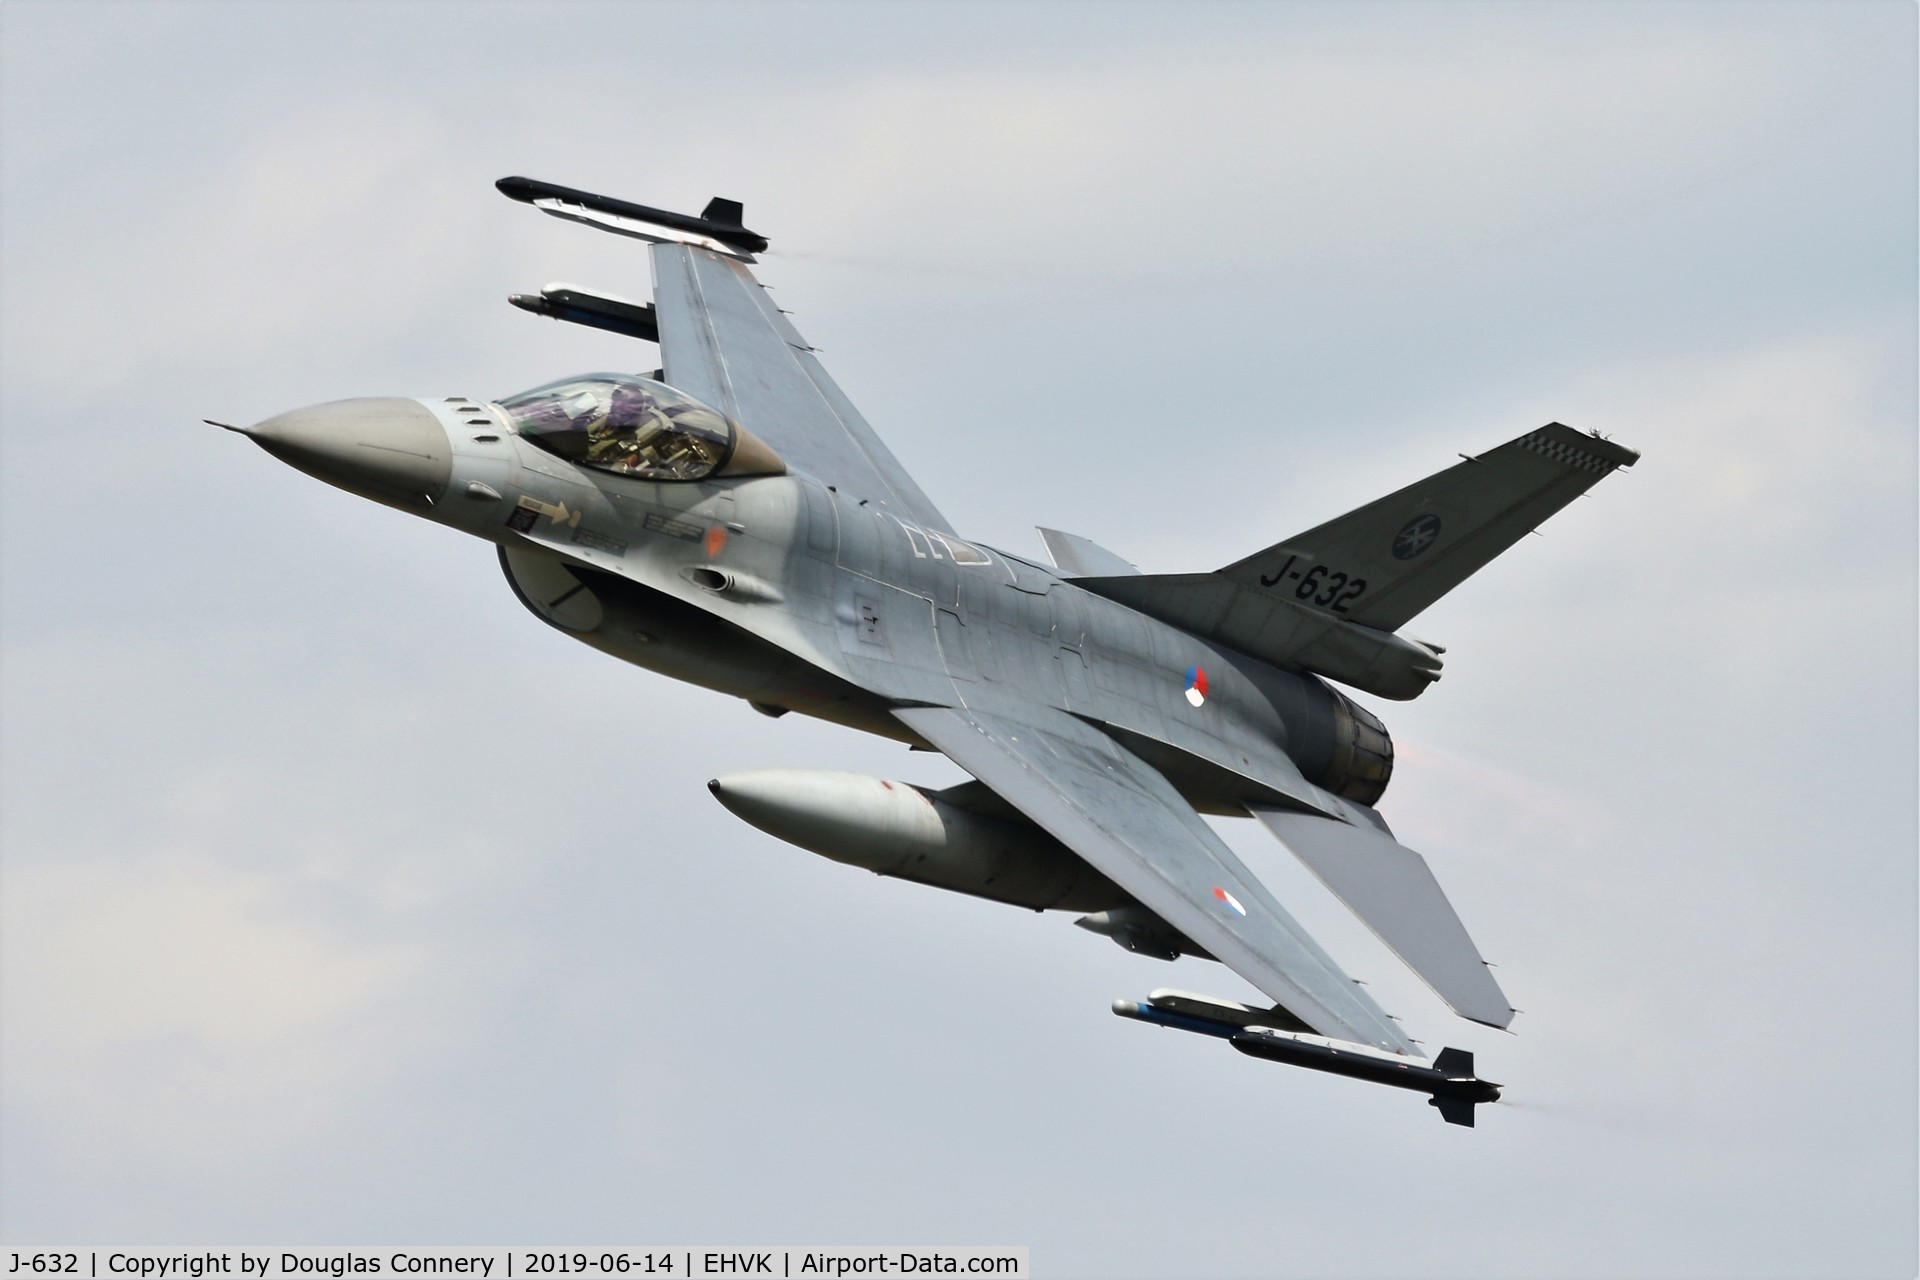 J-632, General Dynamics F-16A Fighting Falcon C/N 6D-64, Departing Volkel AB as part of the air power demo